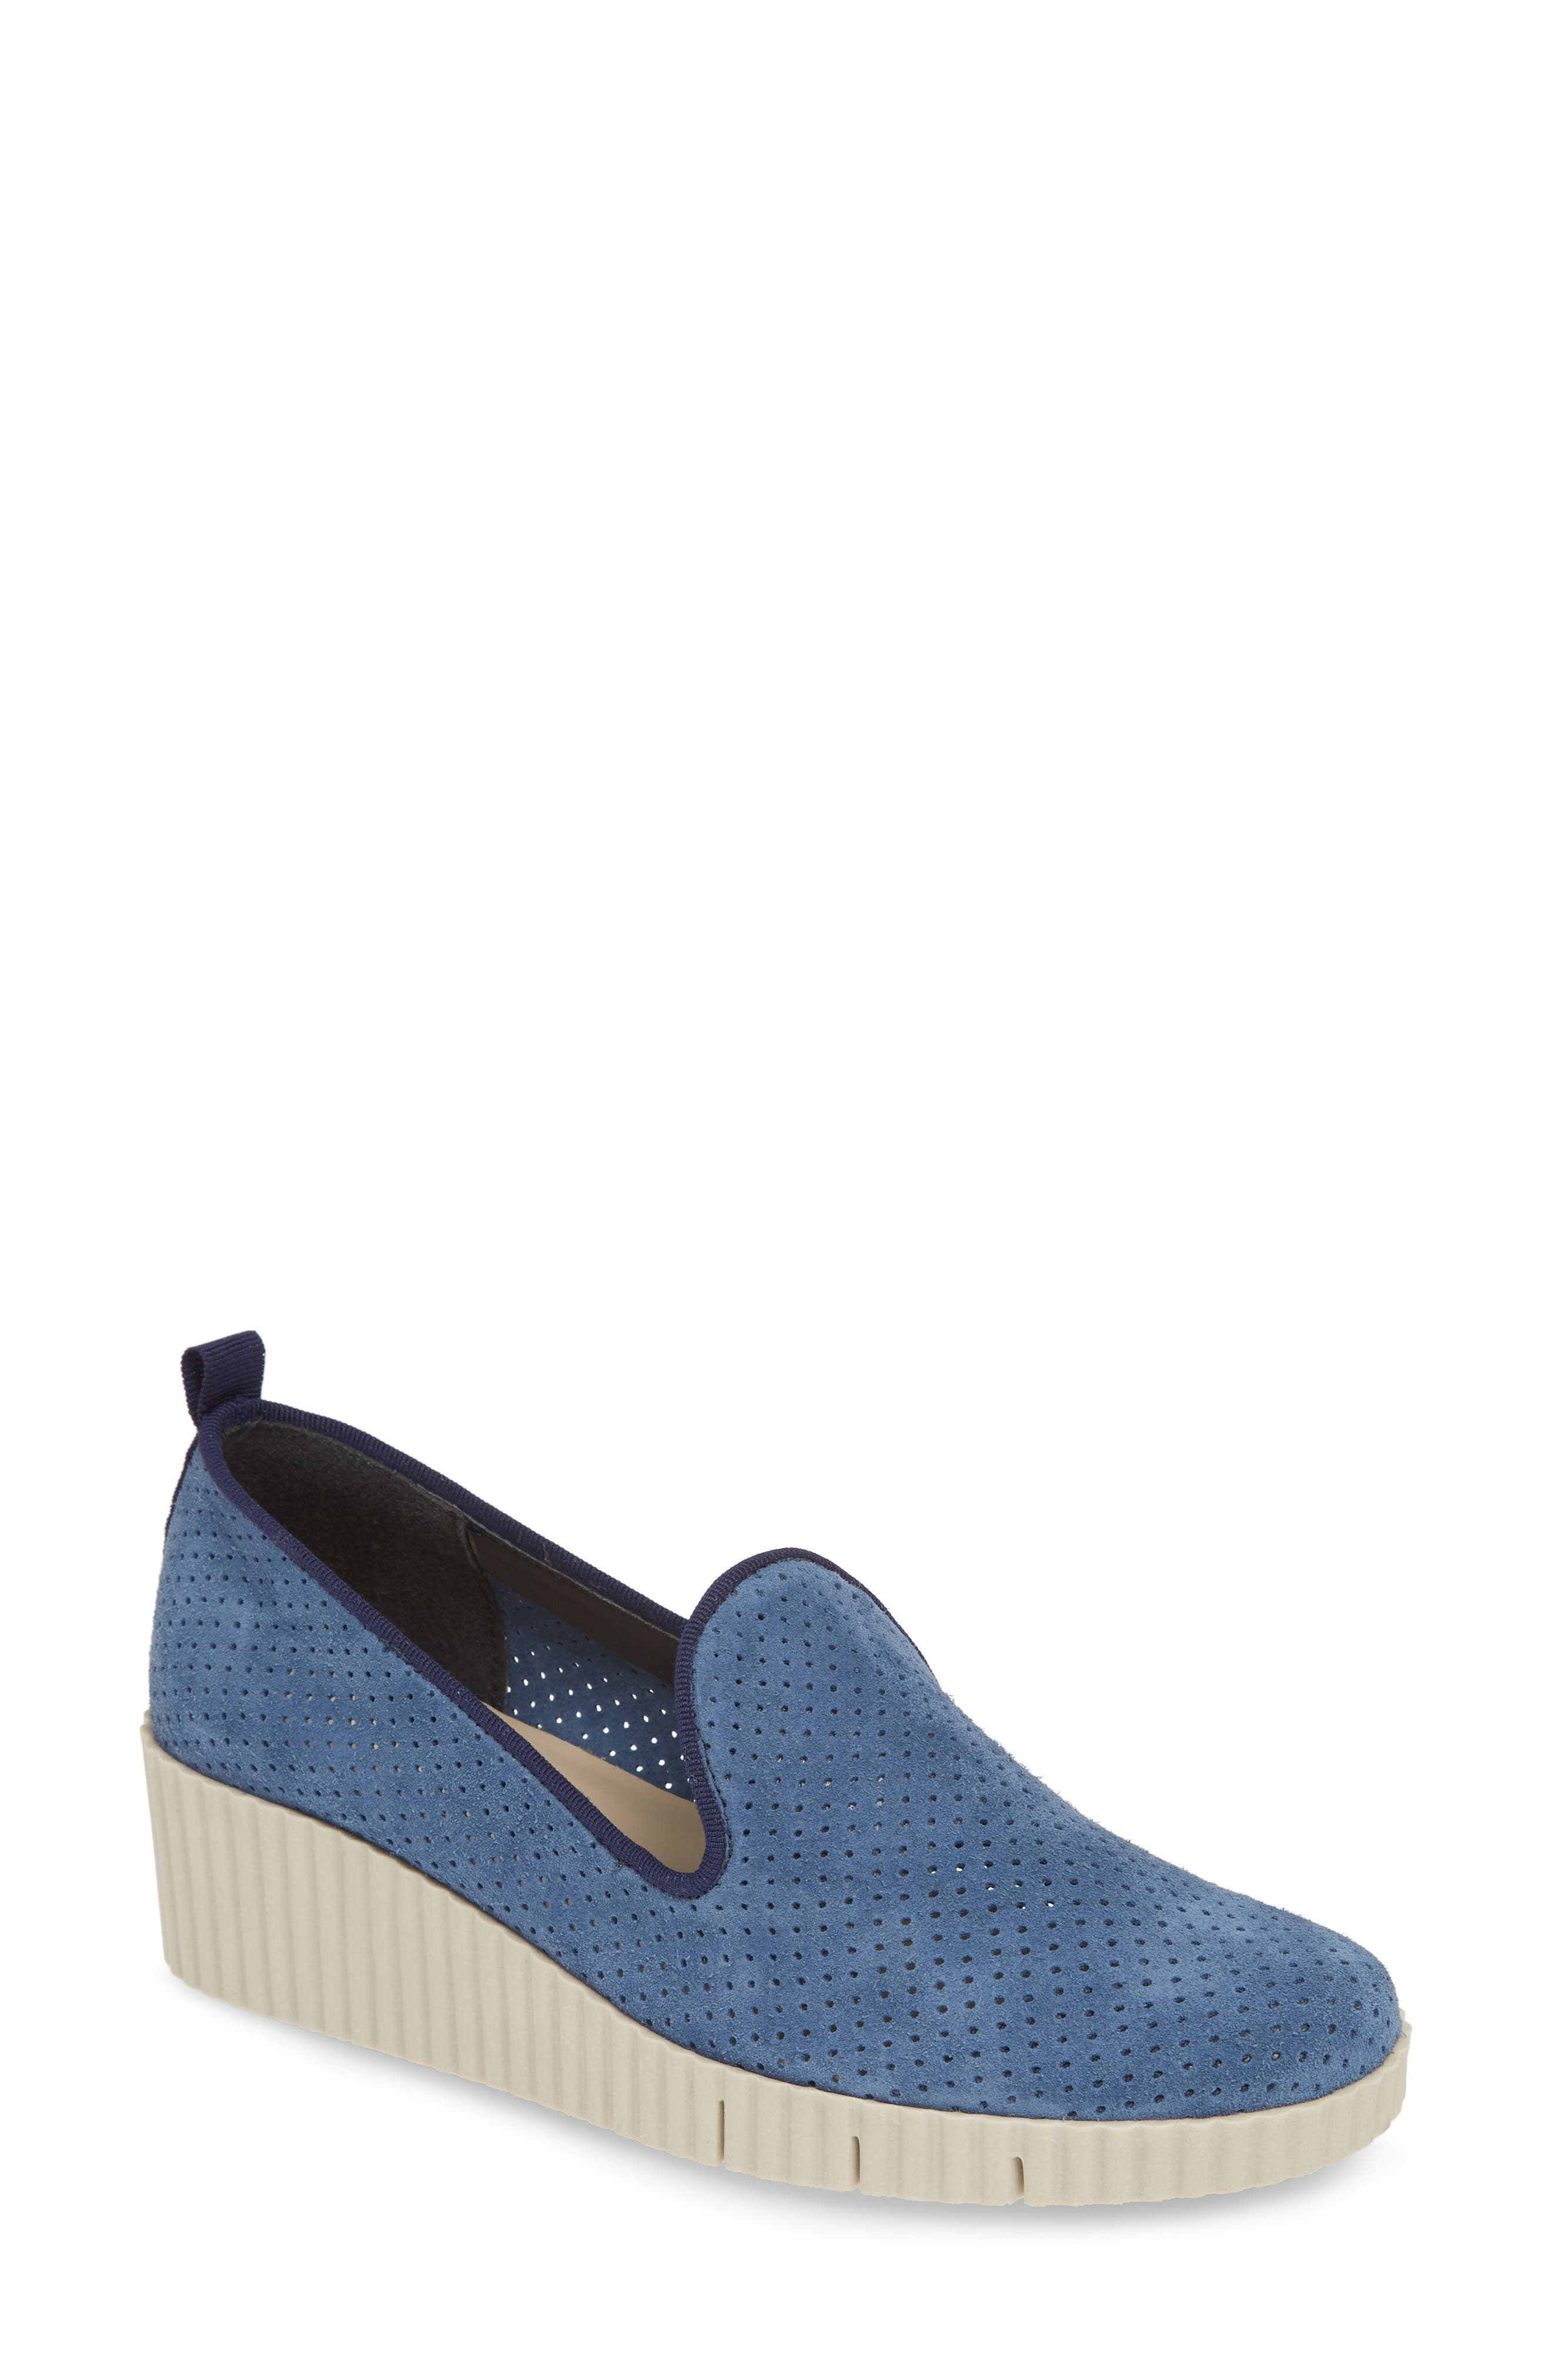 The Flexx Fast Times Too Perforated Wedge Loafer, Blue